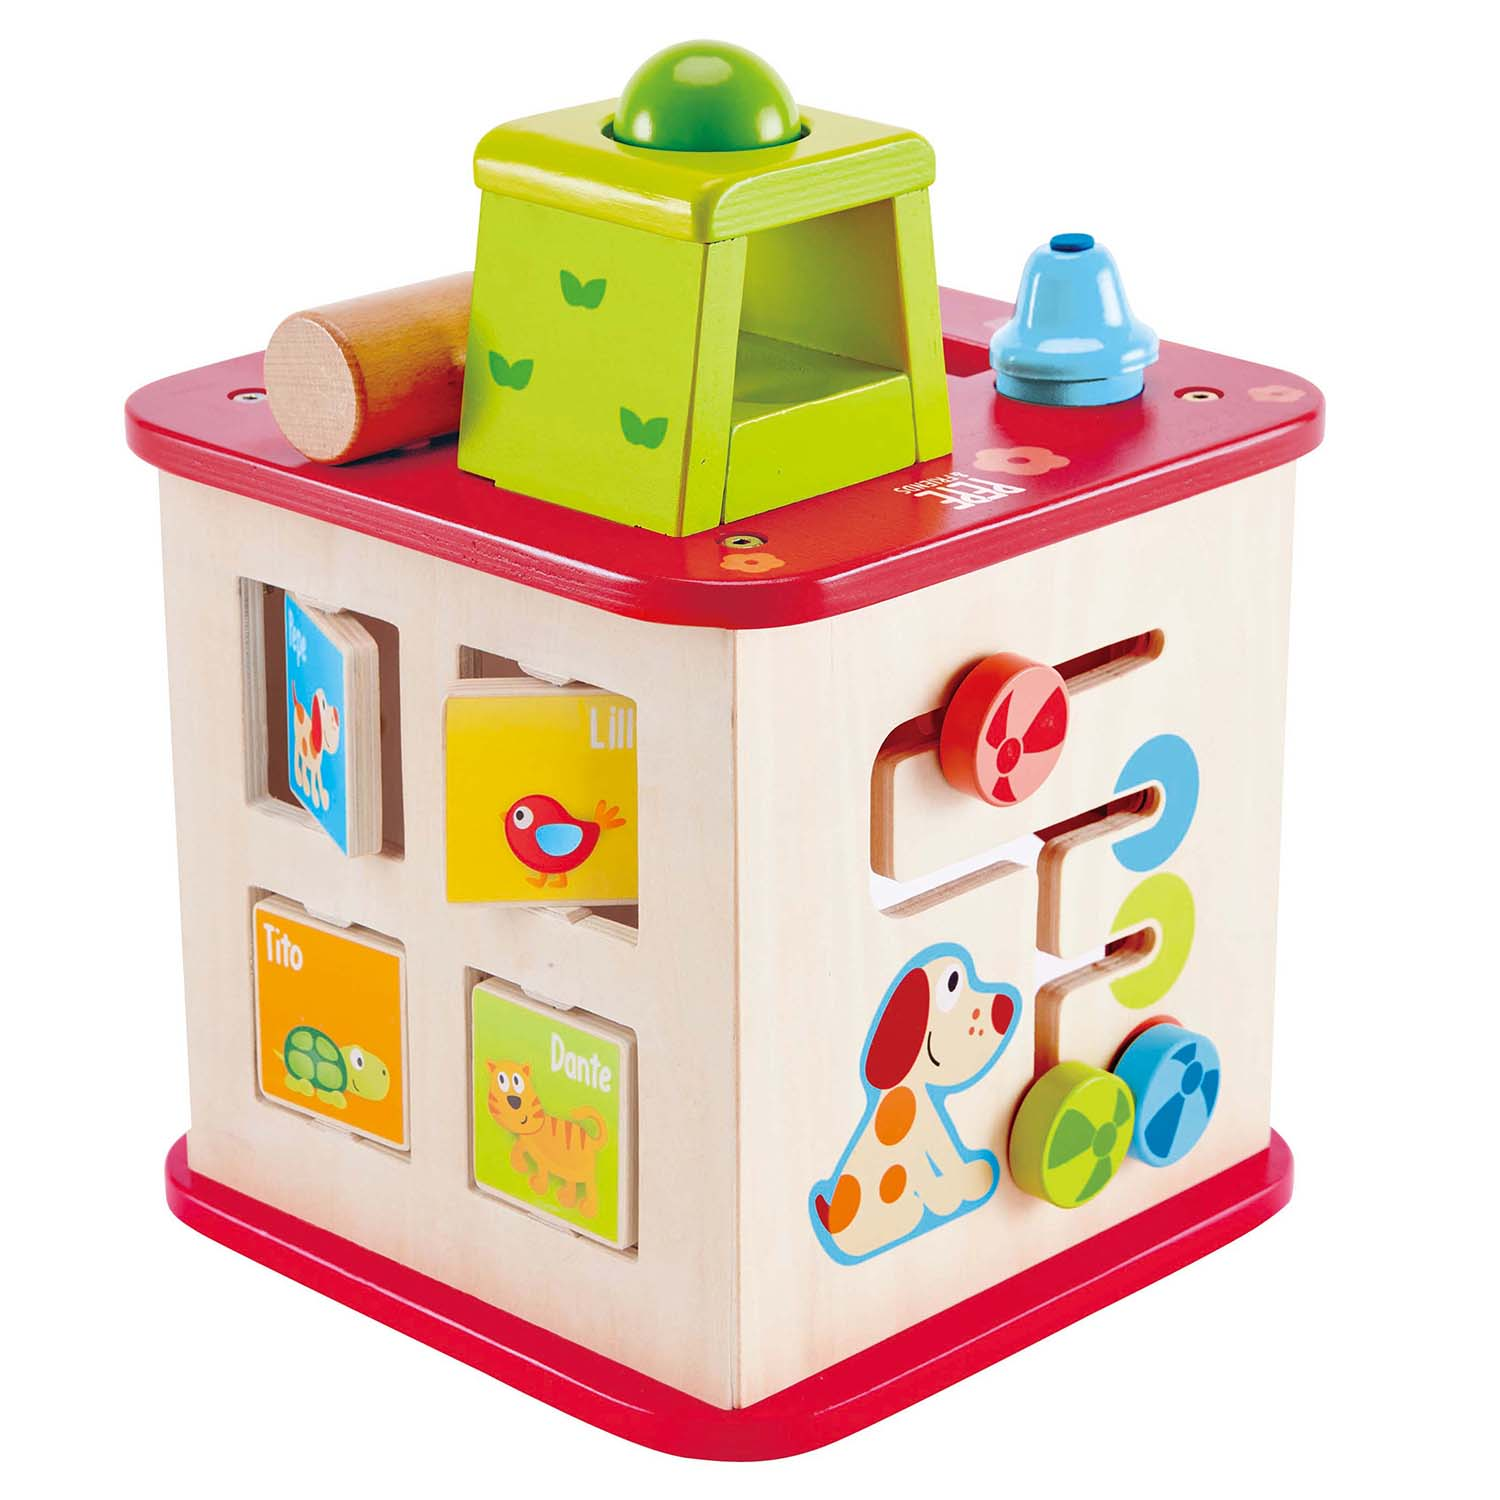 Hape Wooden Toys Educational Toy Dollhouse Wooden Puzzle